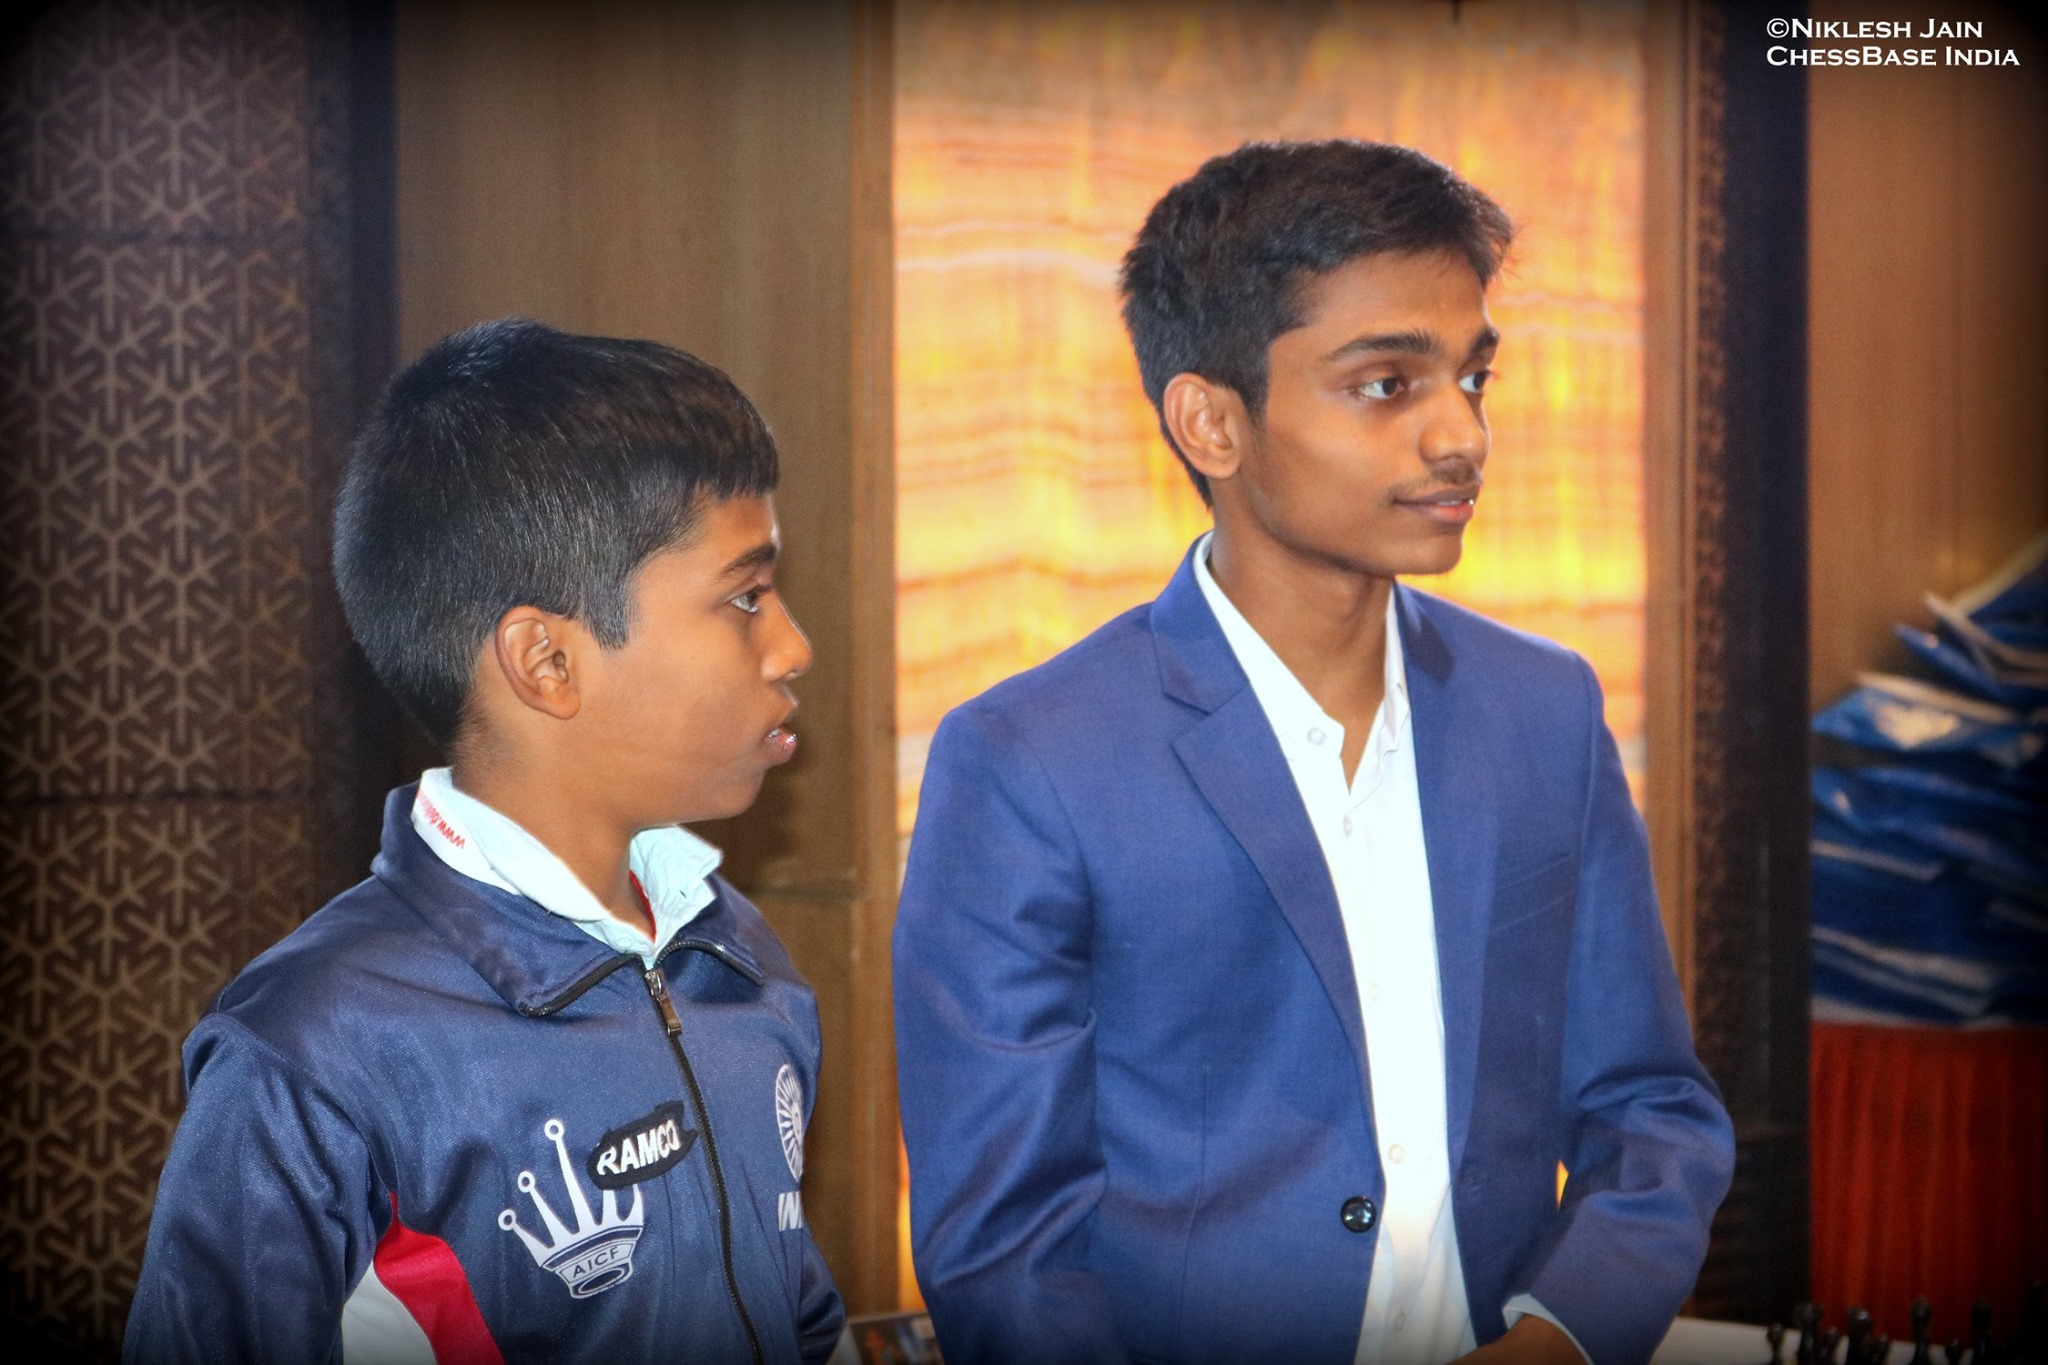 Chess Gurukul domination in London! – ChessBase India